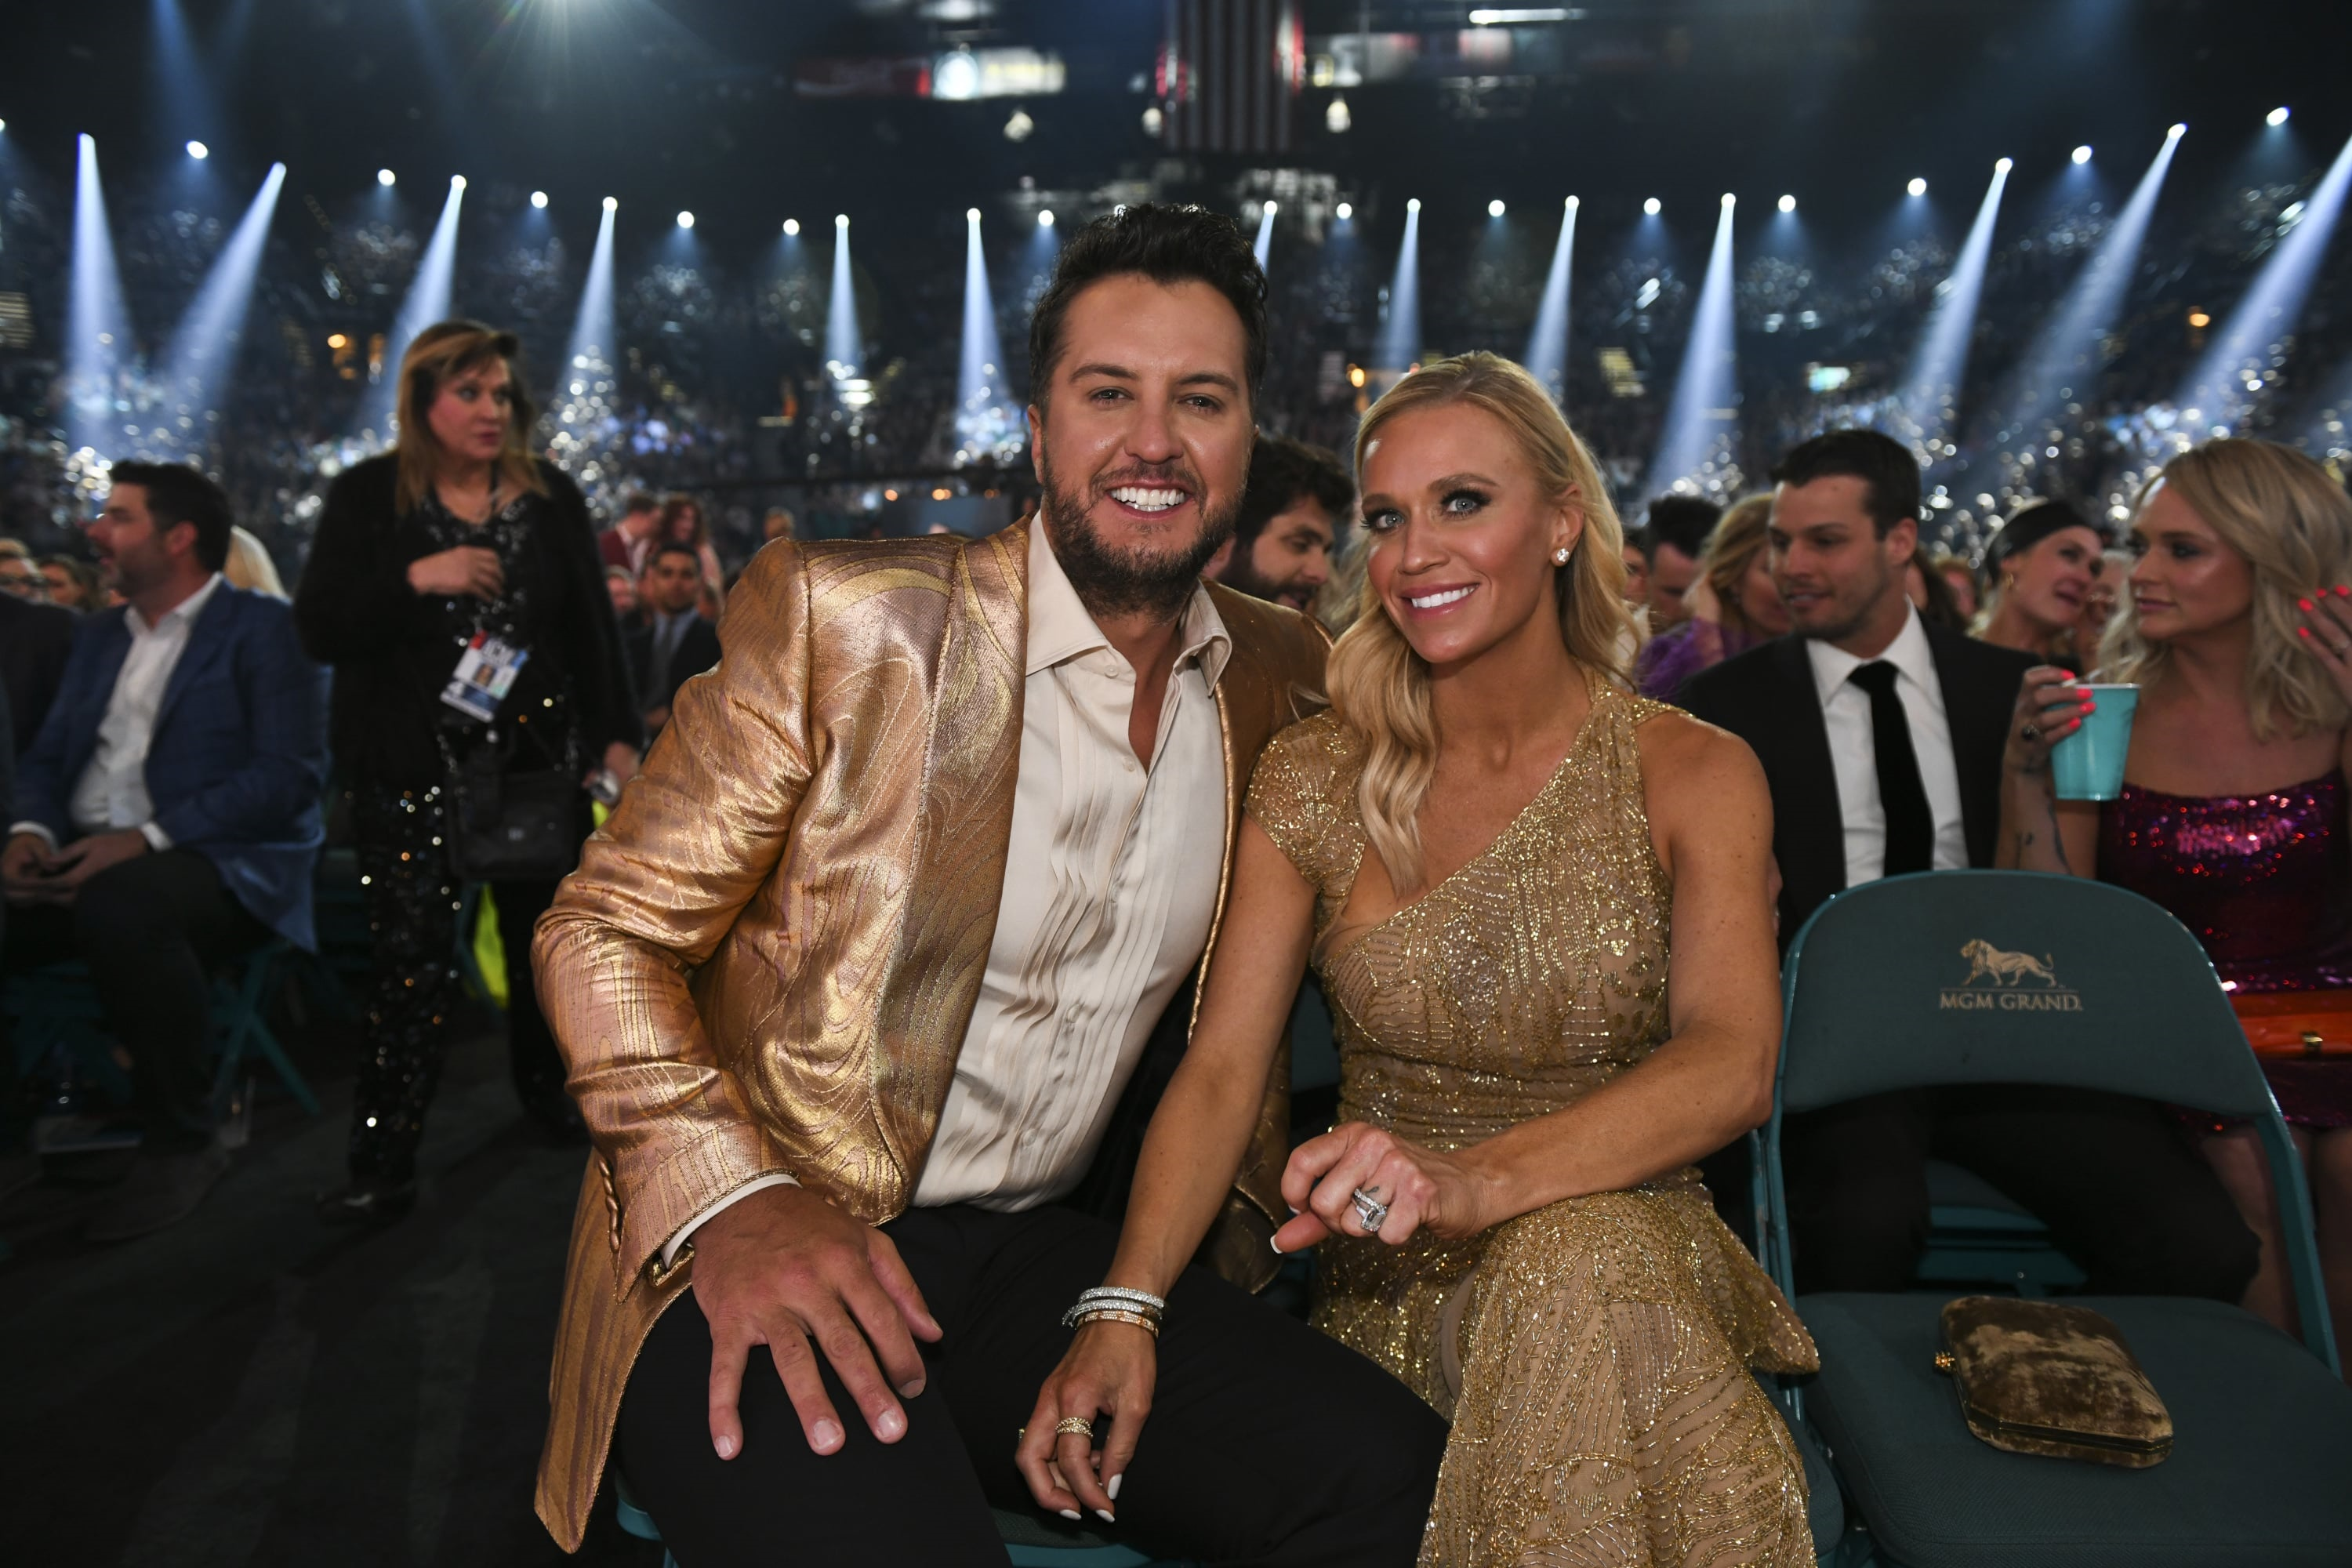 Luke Bryan and wife Caroline during the 54TH ACADEMY OF COUNTRY MUSIC AWARDS, to broadcast LIVE from MGM Grand Garden Arena in Las Vegas Sunday, April 7, 2019 (8:00-11:00 PM, ET/delayed PT) on the CBS Television Network. Photo: Sam Morris/CBS ©2019 CBS Broadcasting, Inc. All Rights Reserved